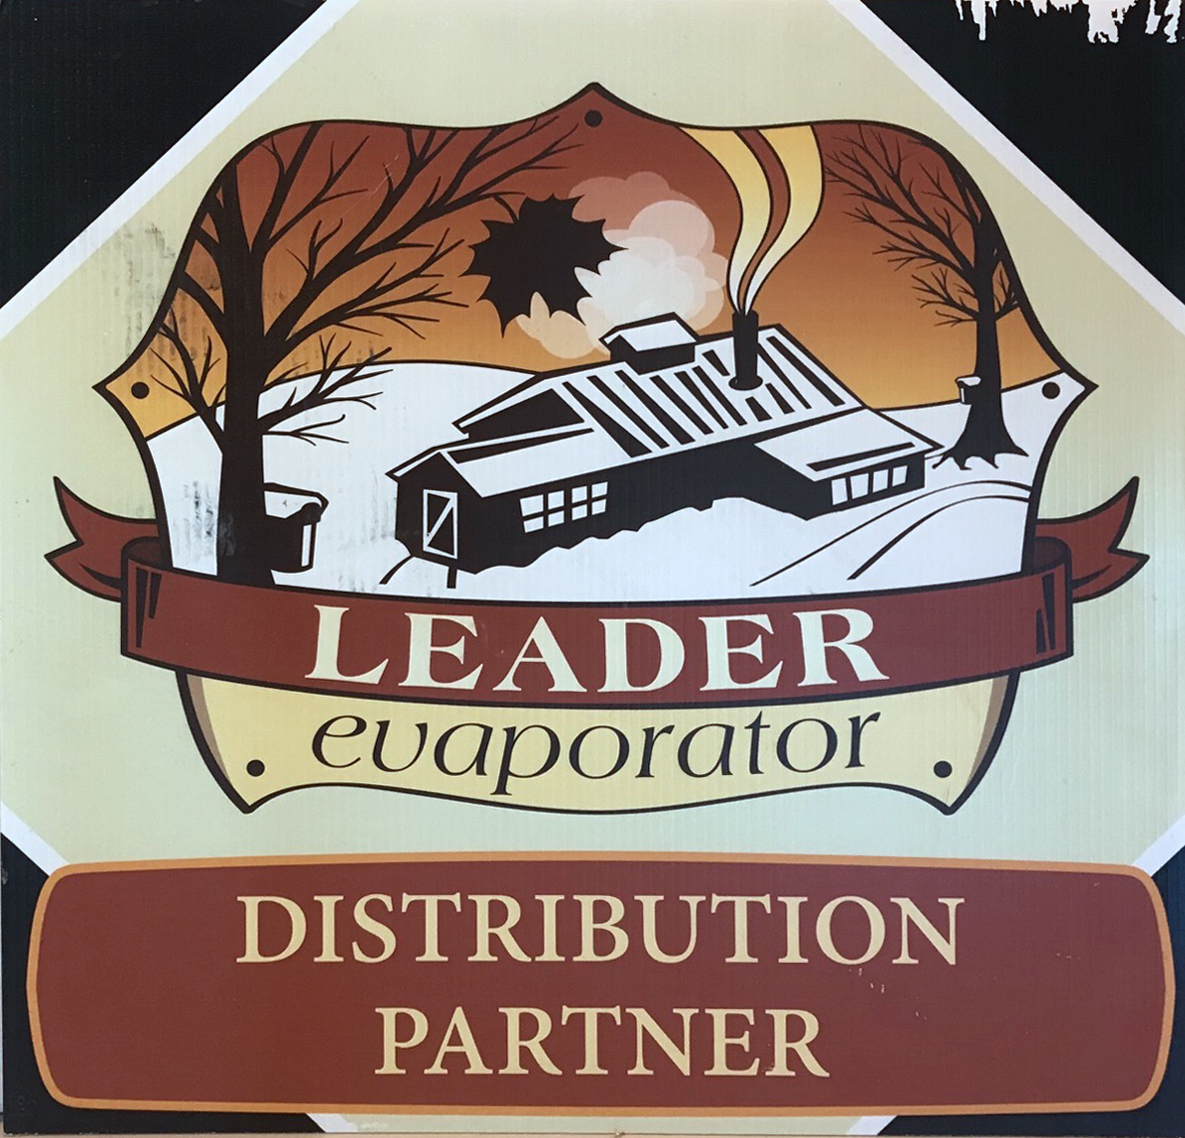 Distributor of Leader Evaporator